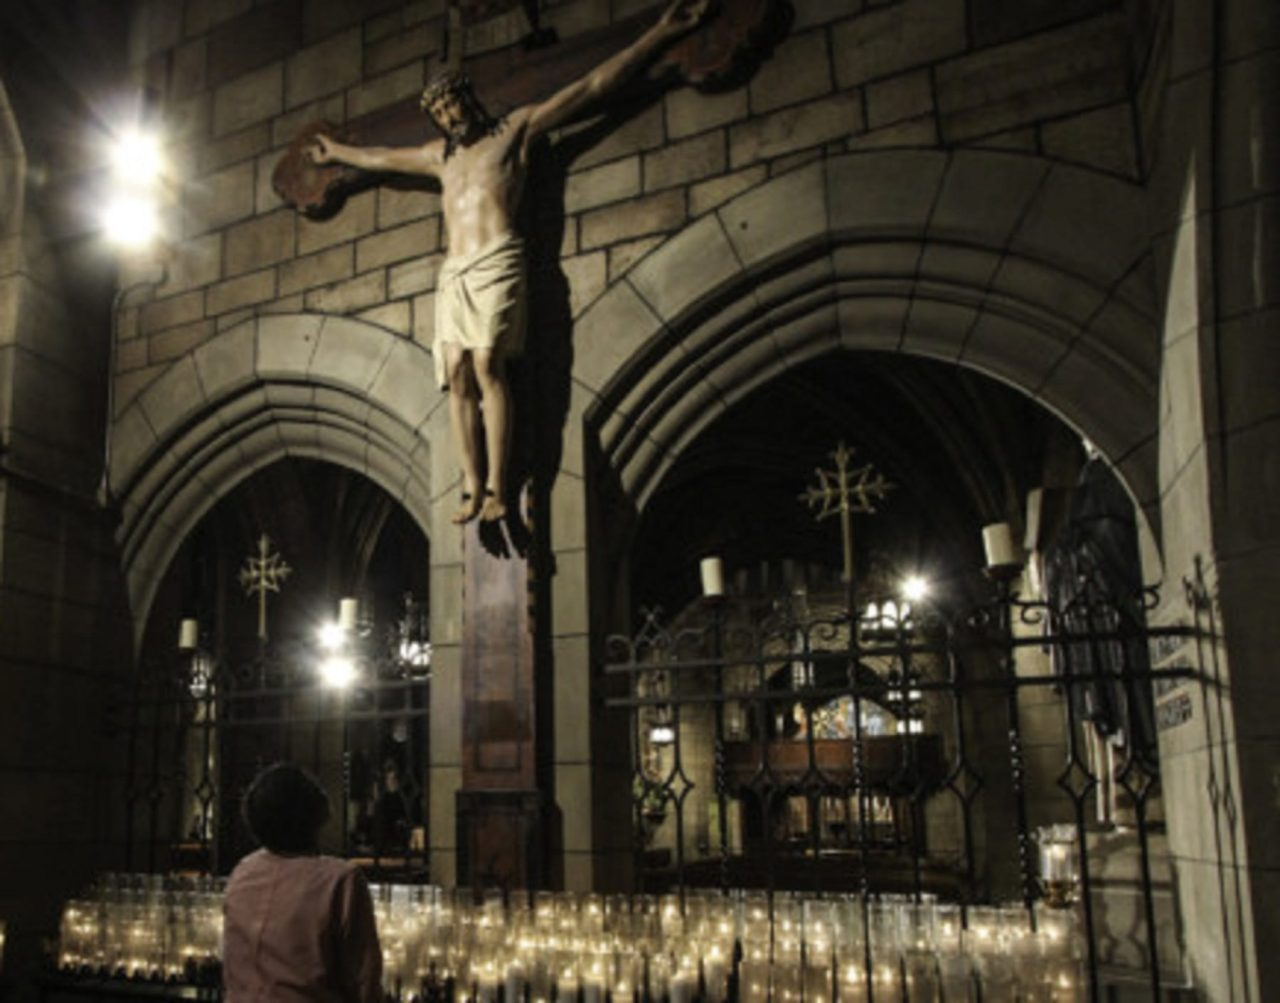 Simplest ways you can win Souls for Christ as a Catholic